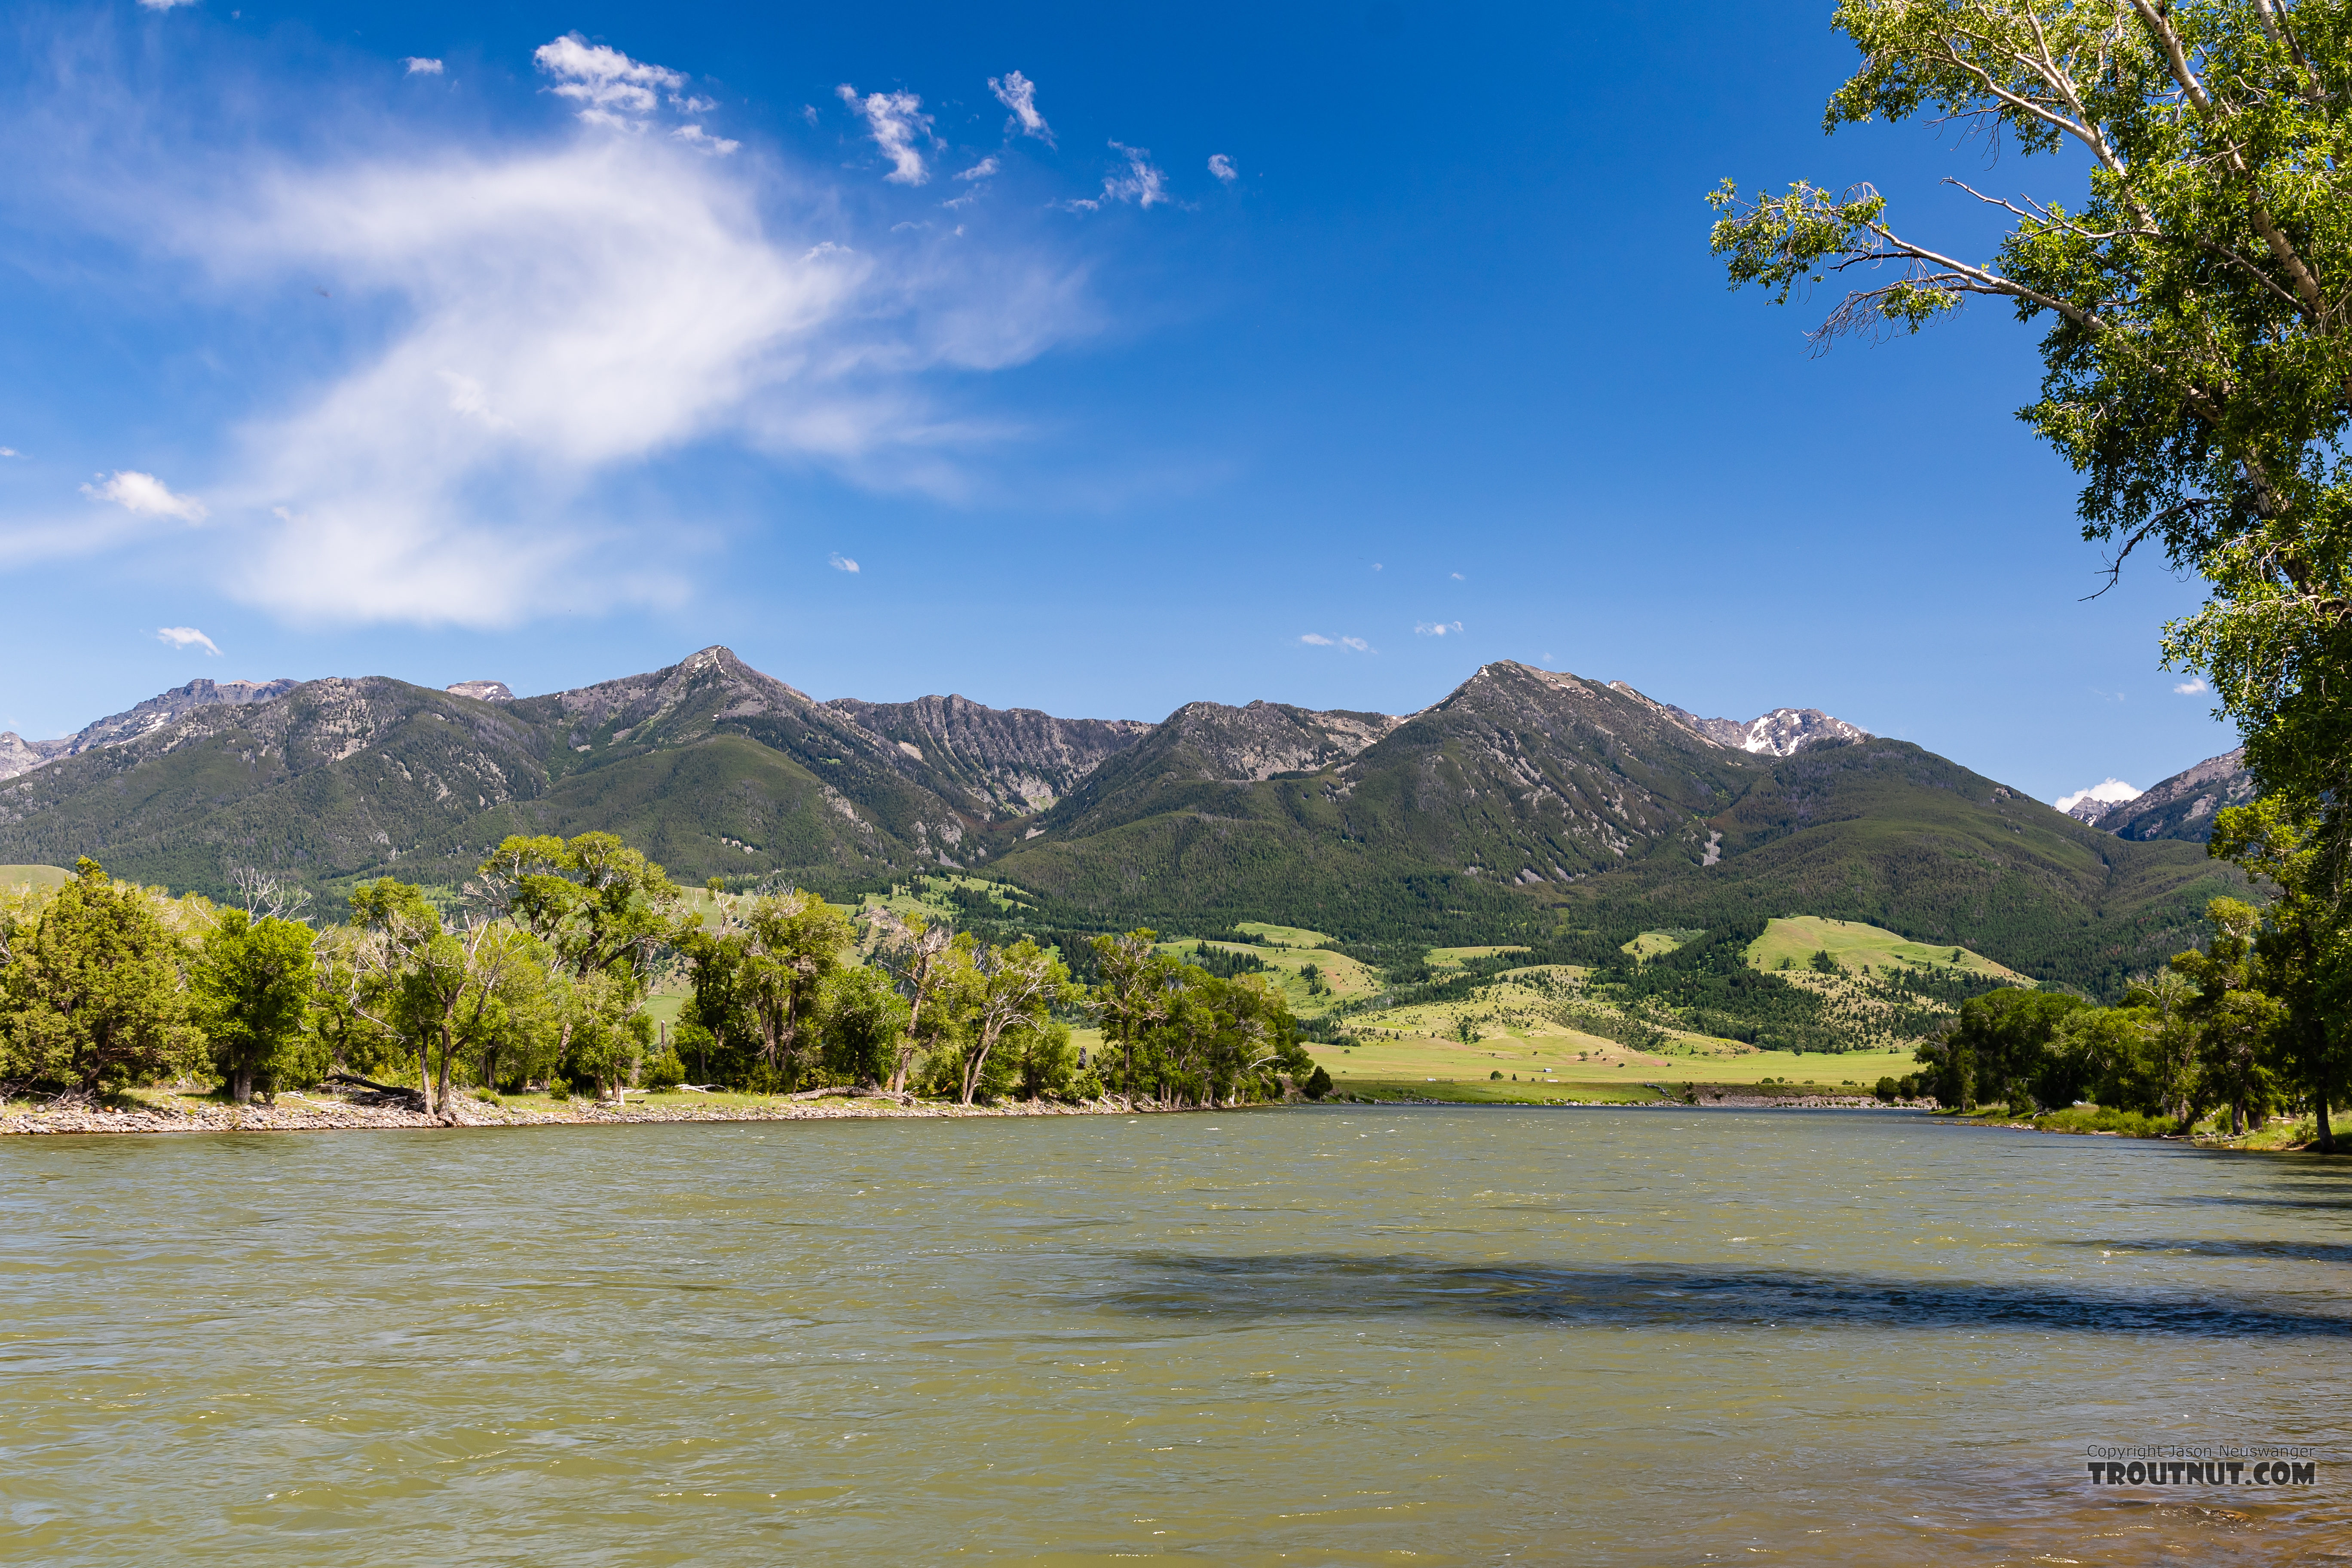 Yellowstone River at Mallard's Rest in Paradise Valley From the Yellowstone River in Montana.